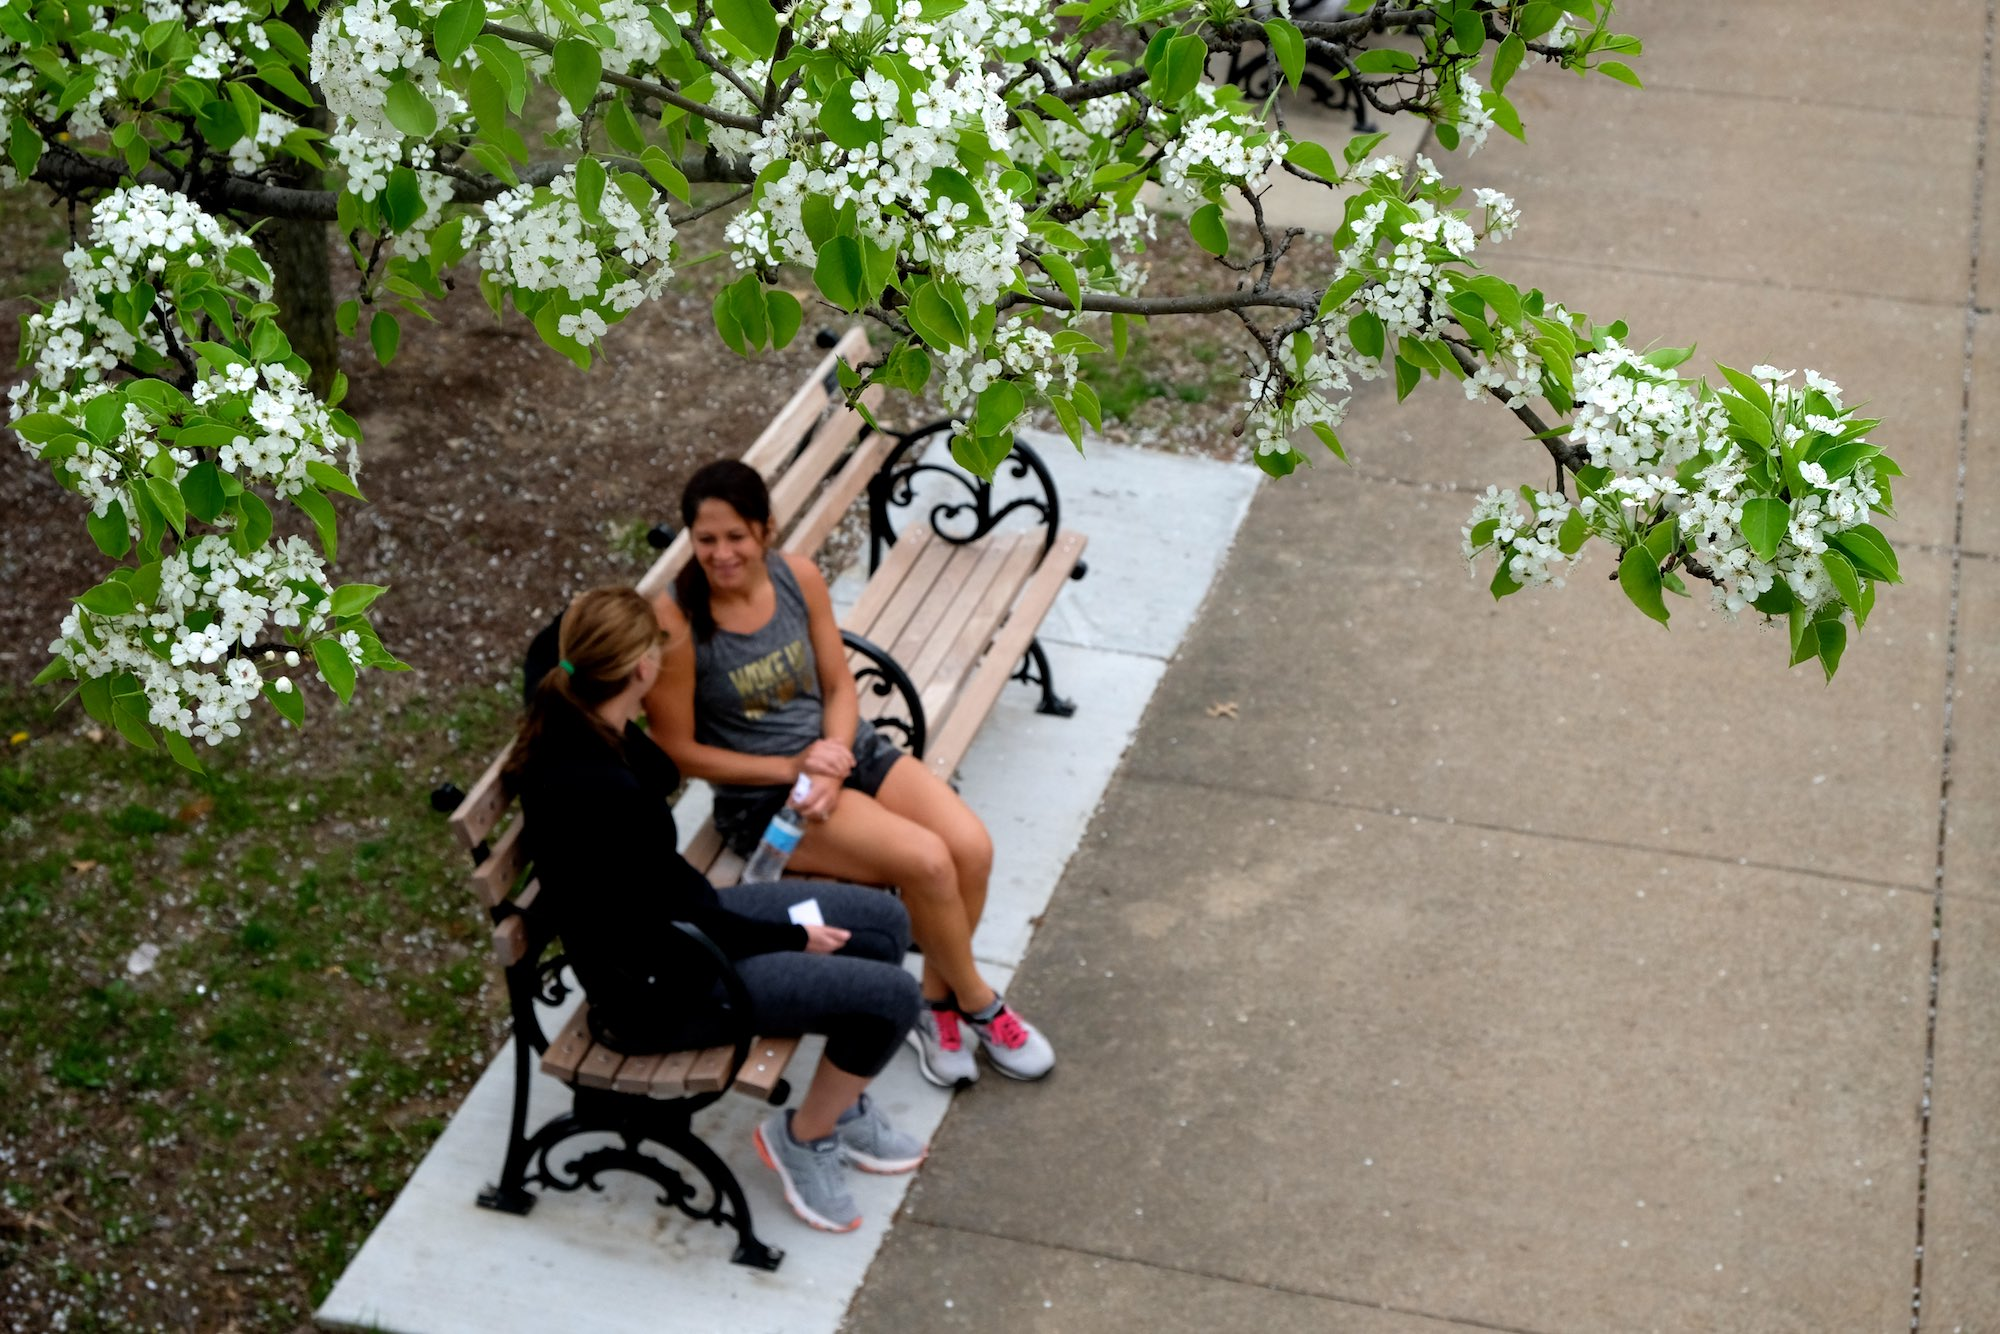 Day 101 - Friends sit and talk on one of the benches under a blooming Bradford pear tree by the Visitor Center.